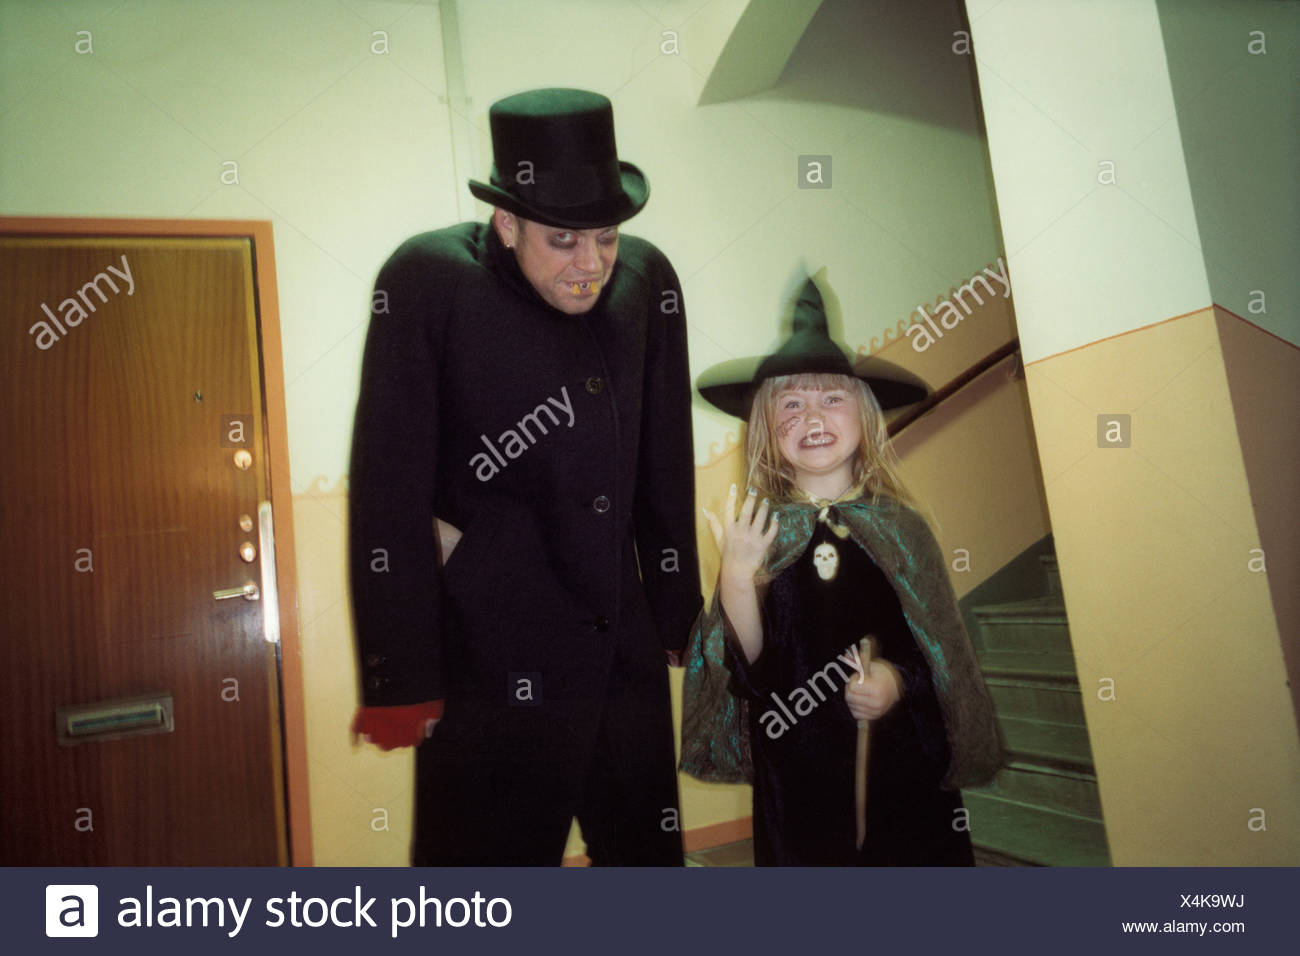 A man in a vampire costume and a girl in a witch costume - Stock Image